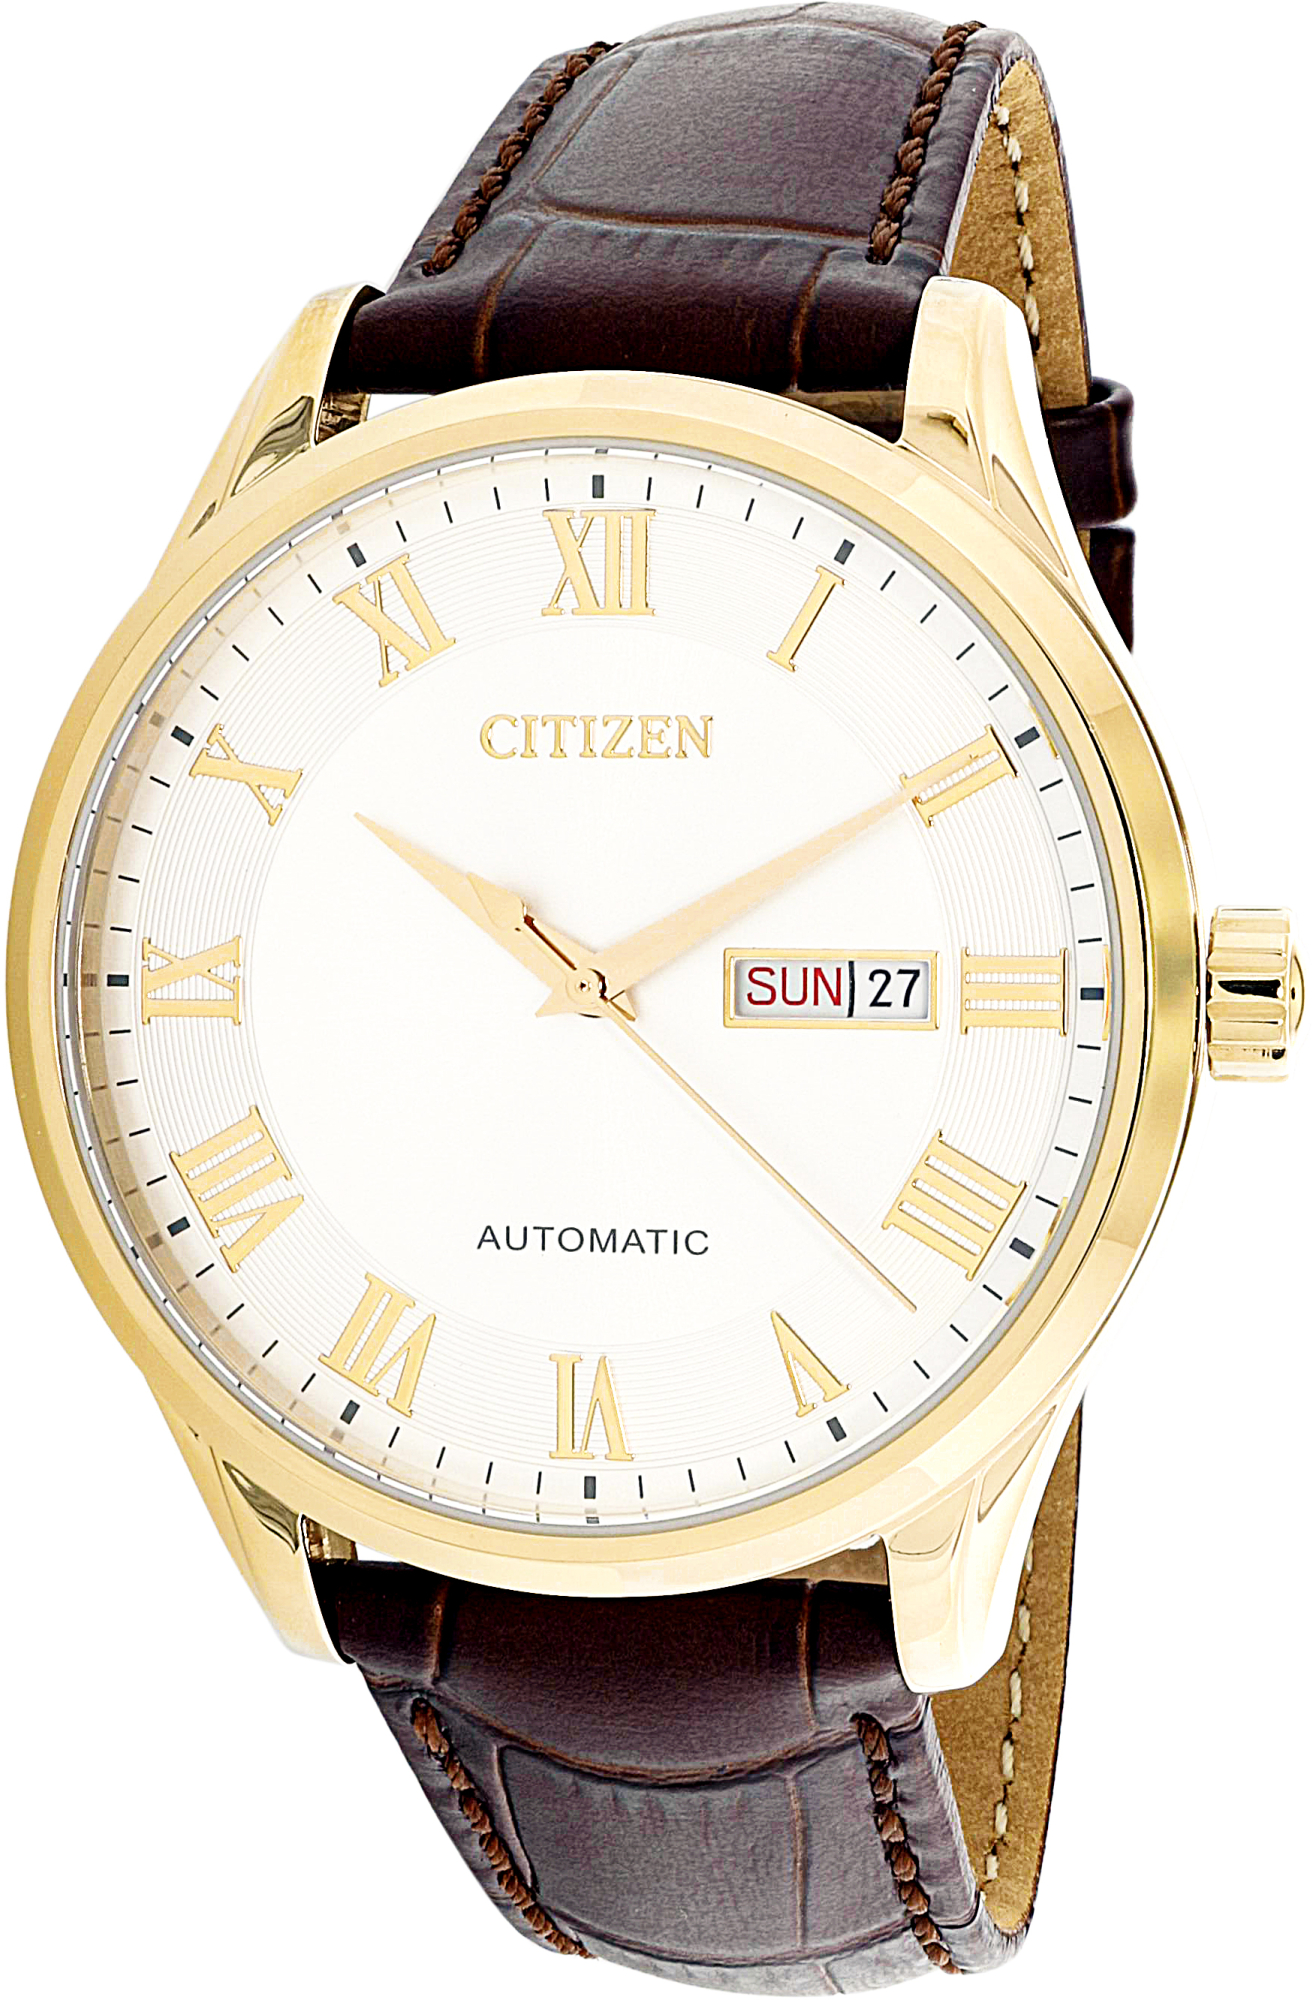 Citizen_Men's_Automatic_NH8363-14A_Gold_Leather_Japanese_Dress_Watch